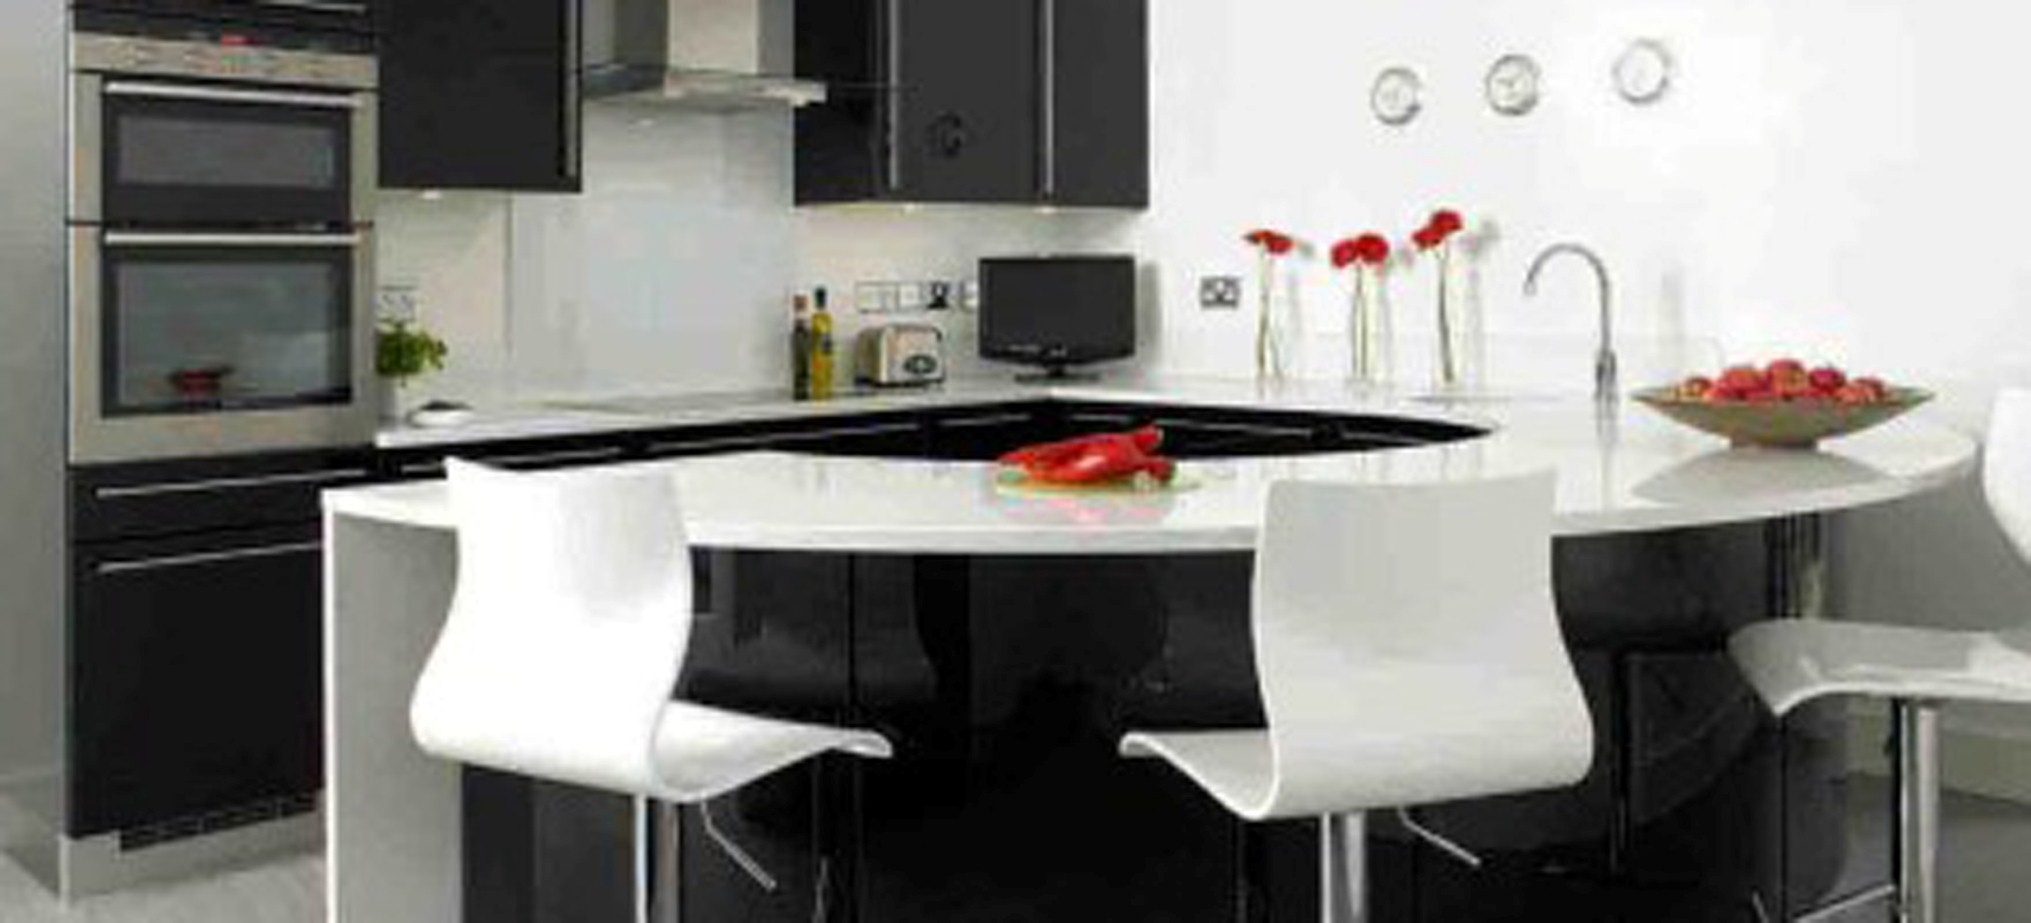 Modern Kitchen Island With Comfortable White Stool And Classic Breakfast Bar Design Plus Traditional Black Storage (View 15 of 31)